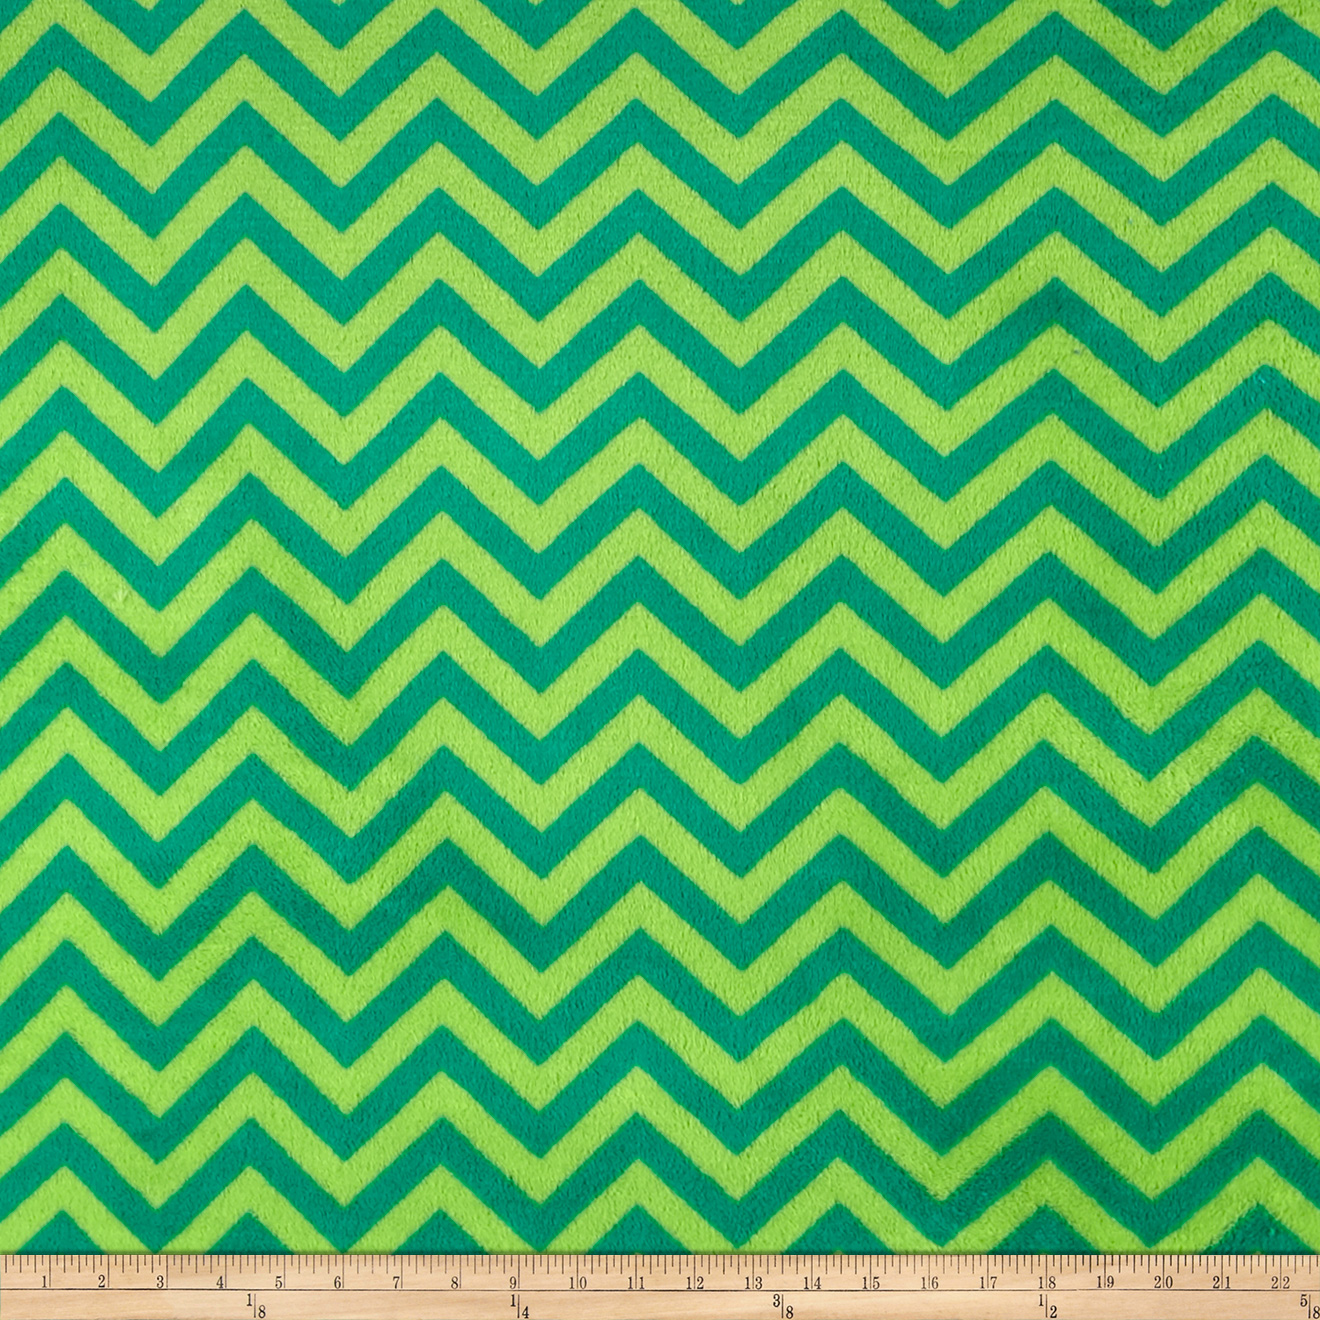 Plush Coral Fleece Chevron Jade Emerald Fabric